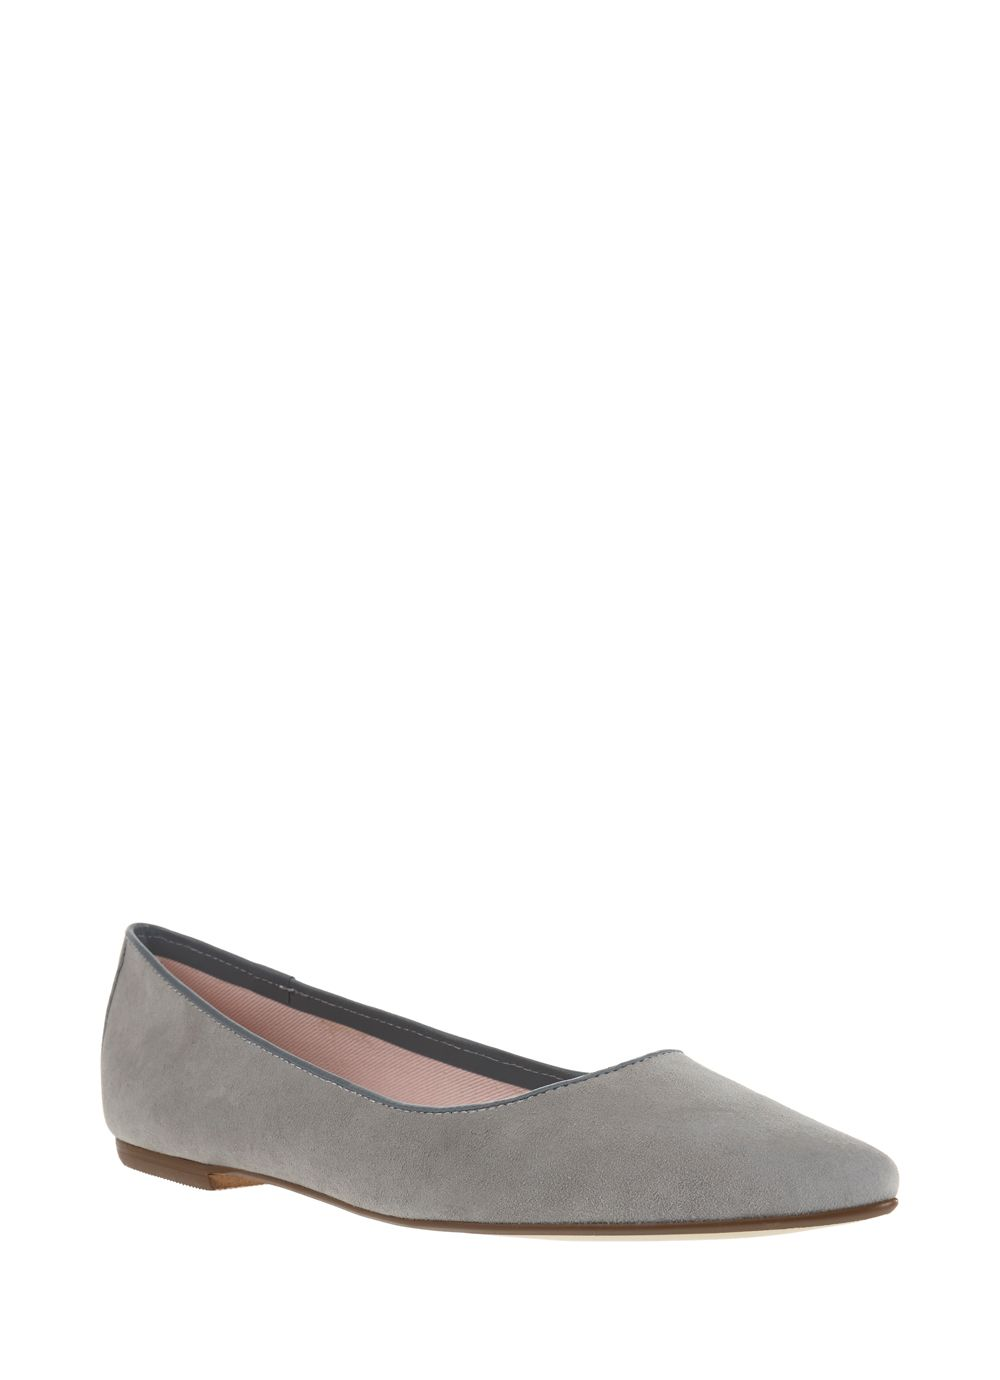 Grey Suede Pixie Pump